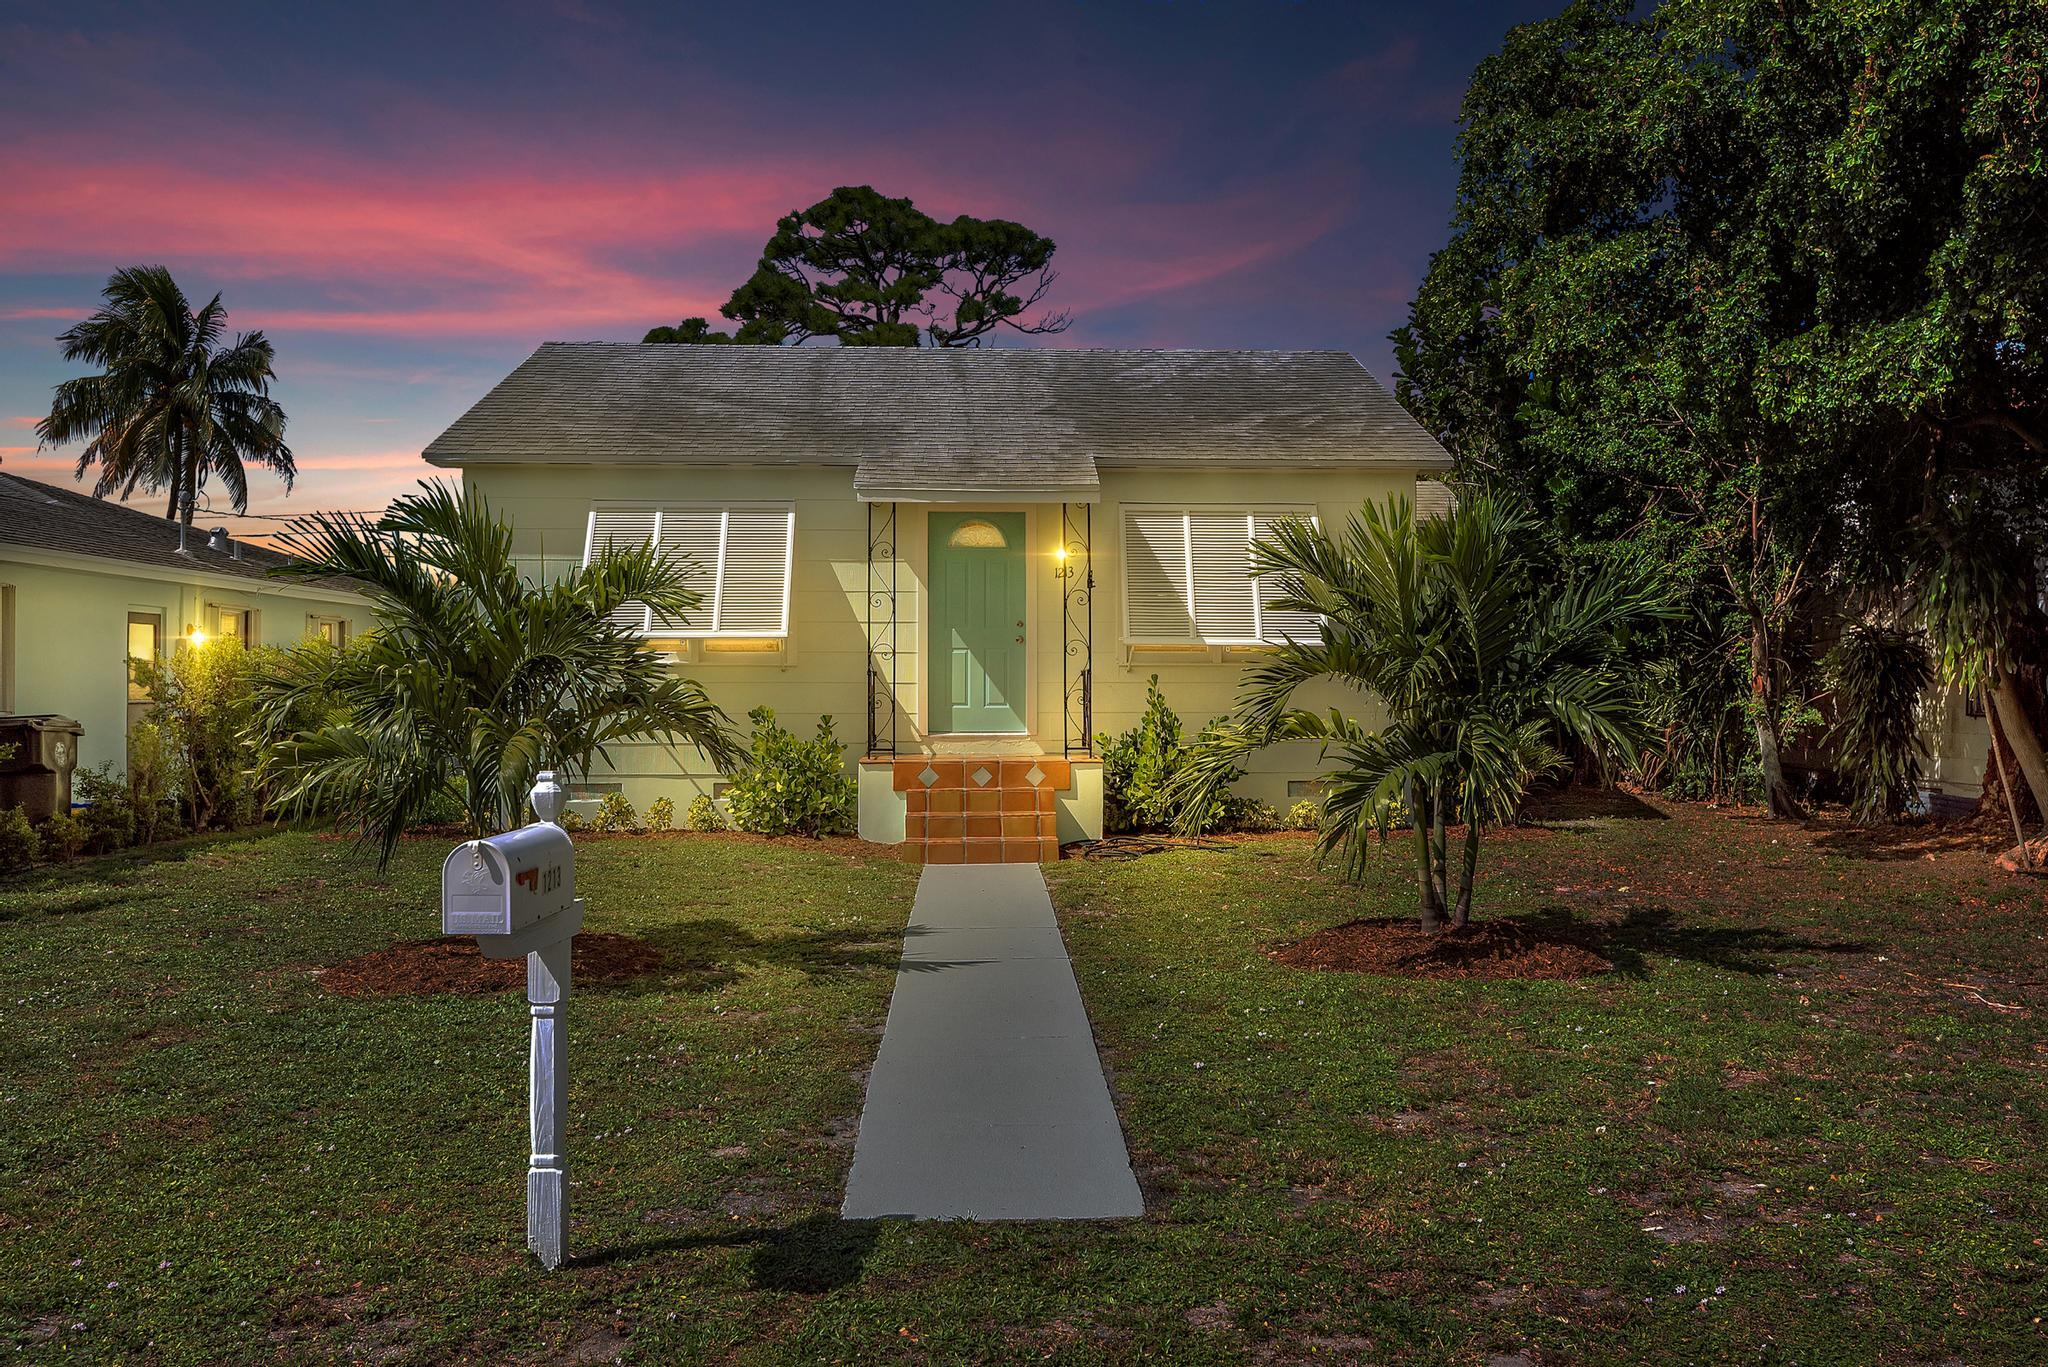 This beautifully remodeled Lake Worth Beach charmer is ready for its new owner!  This home features a modern white kitchen with granite and stainless appliances, freshly restored yellow oak floors, a new bathroom with the high end tile and fixtures, updated electric, newer HVAC, and fresh paint and trim throughout.  Centrally located this property is close to Sunset Ridge Park (3 blocks), Lake Worth Beach Municipal golf course(1.4 Miles), Lake Worth Beach (2.6 miles), and I-95 (for the commuters). Schedule your private tour today.